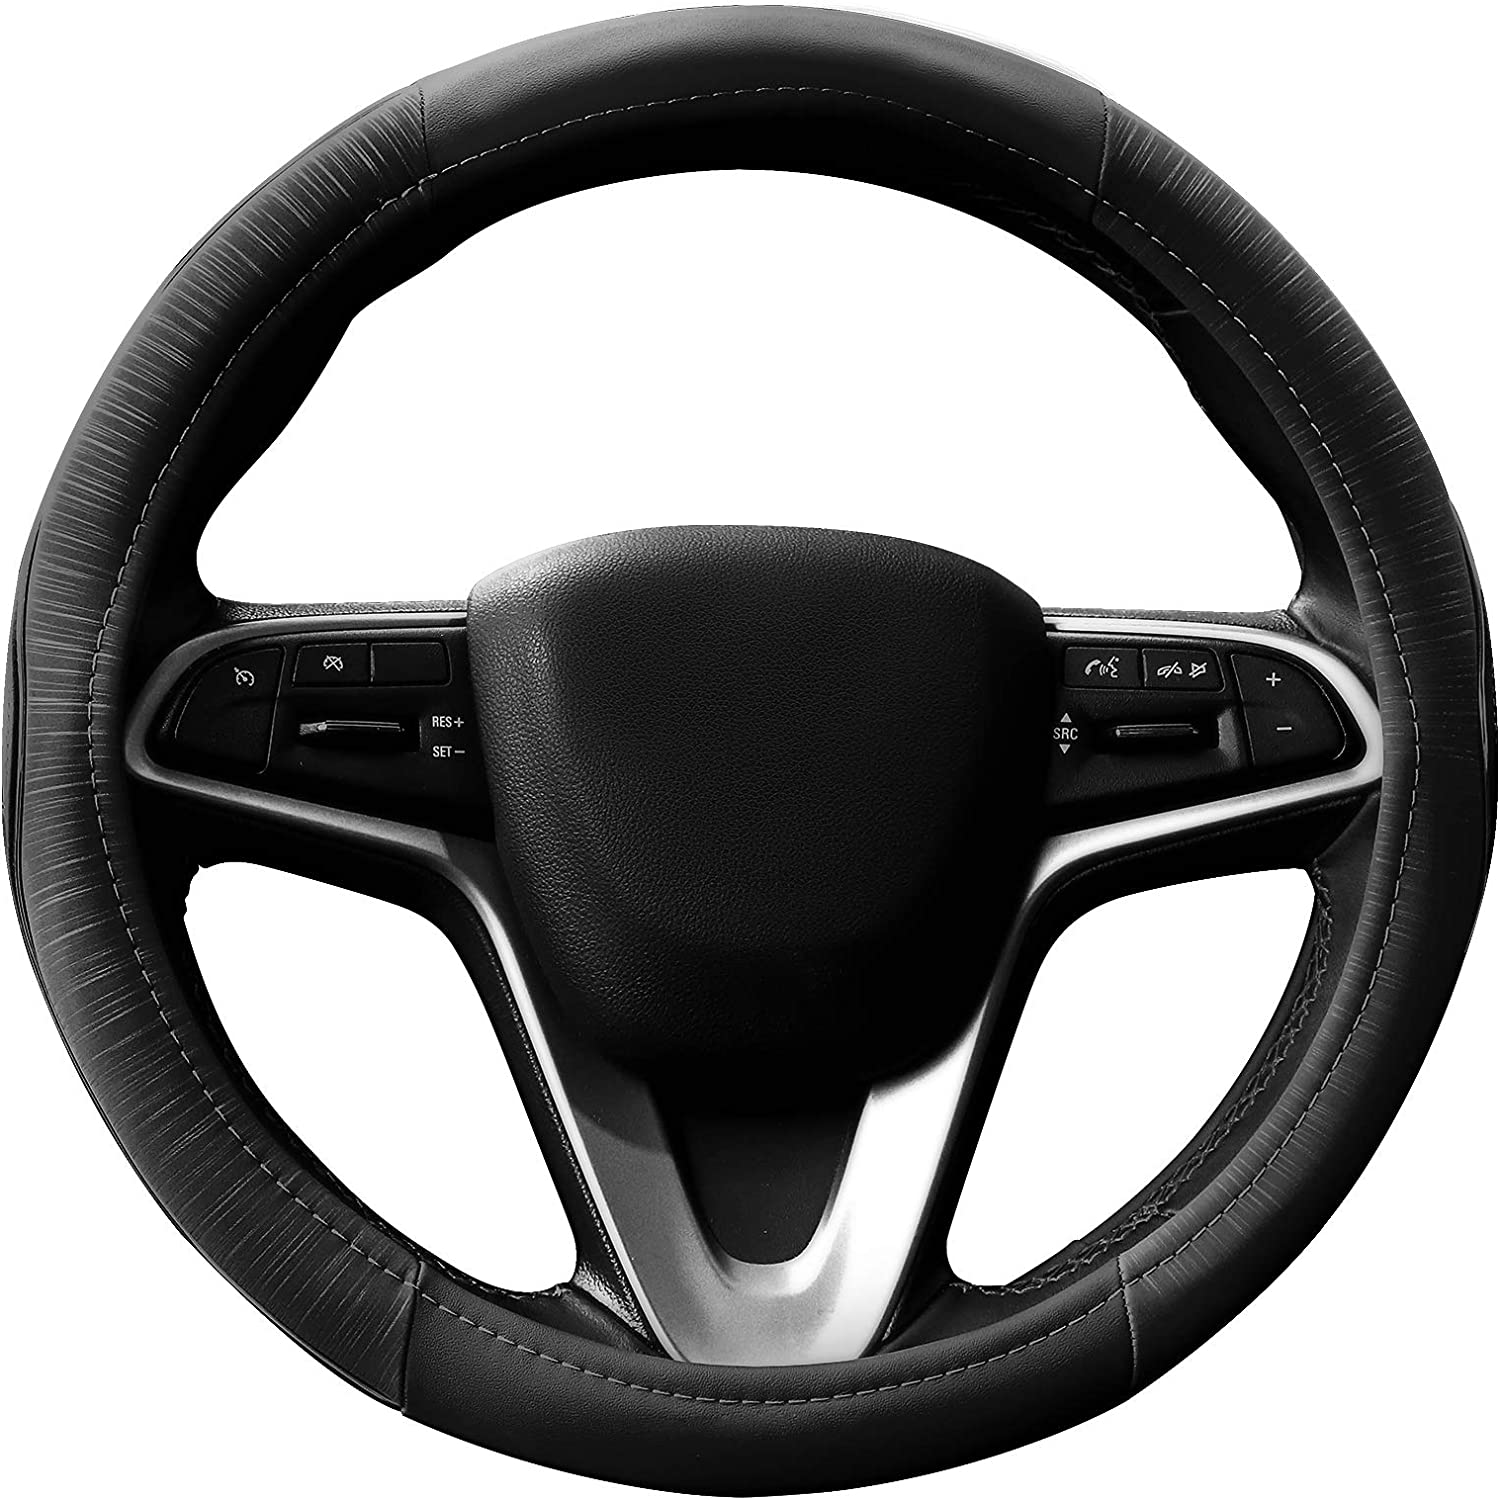 HOUSE DAY Finally popular brand Leather Car Steering Wheel Re Heat Long Beach Mall Cover Odorless TPR